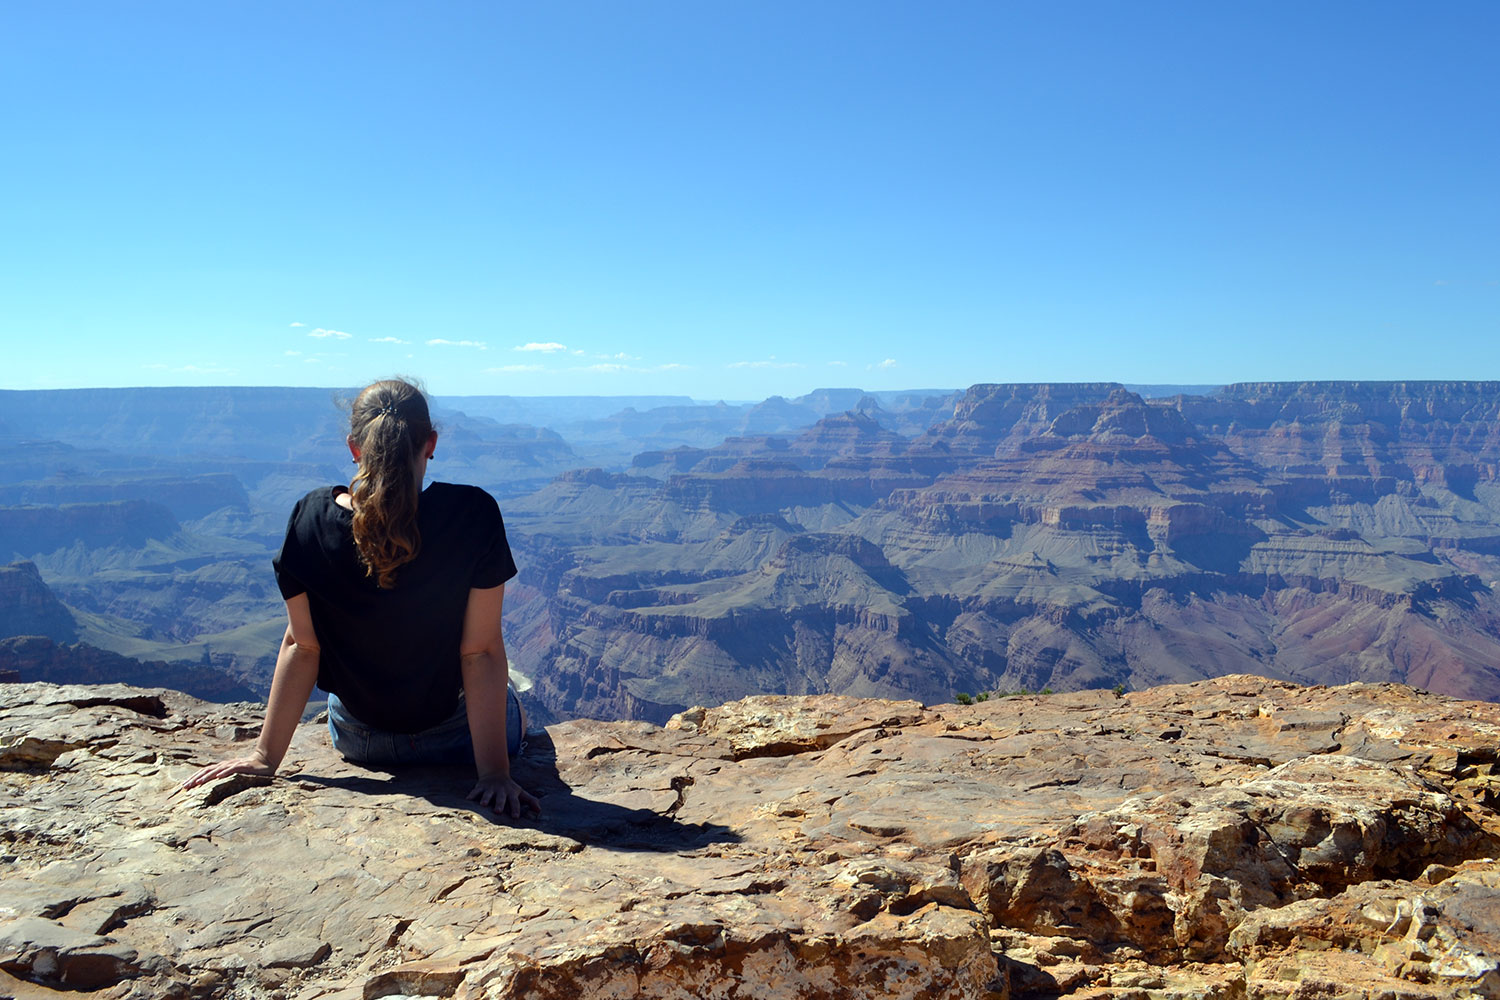 Travel Diary: Grand Canyon | USA Roadtrip - Grand Canyon 2